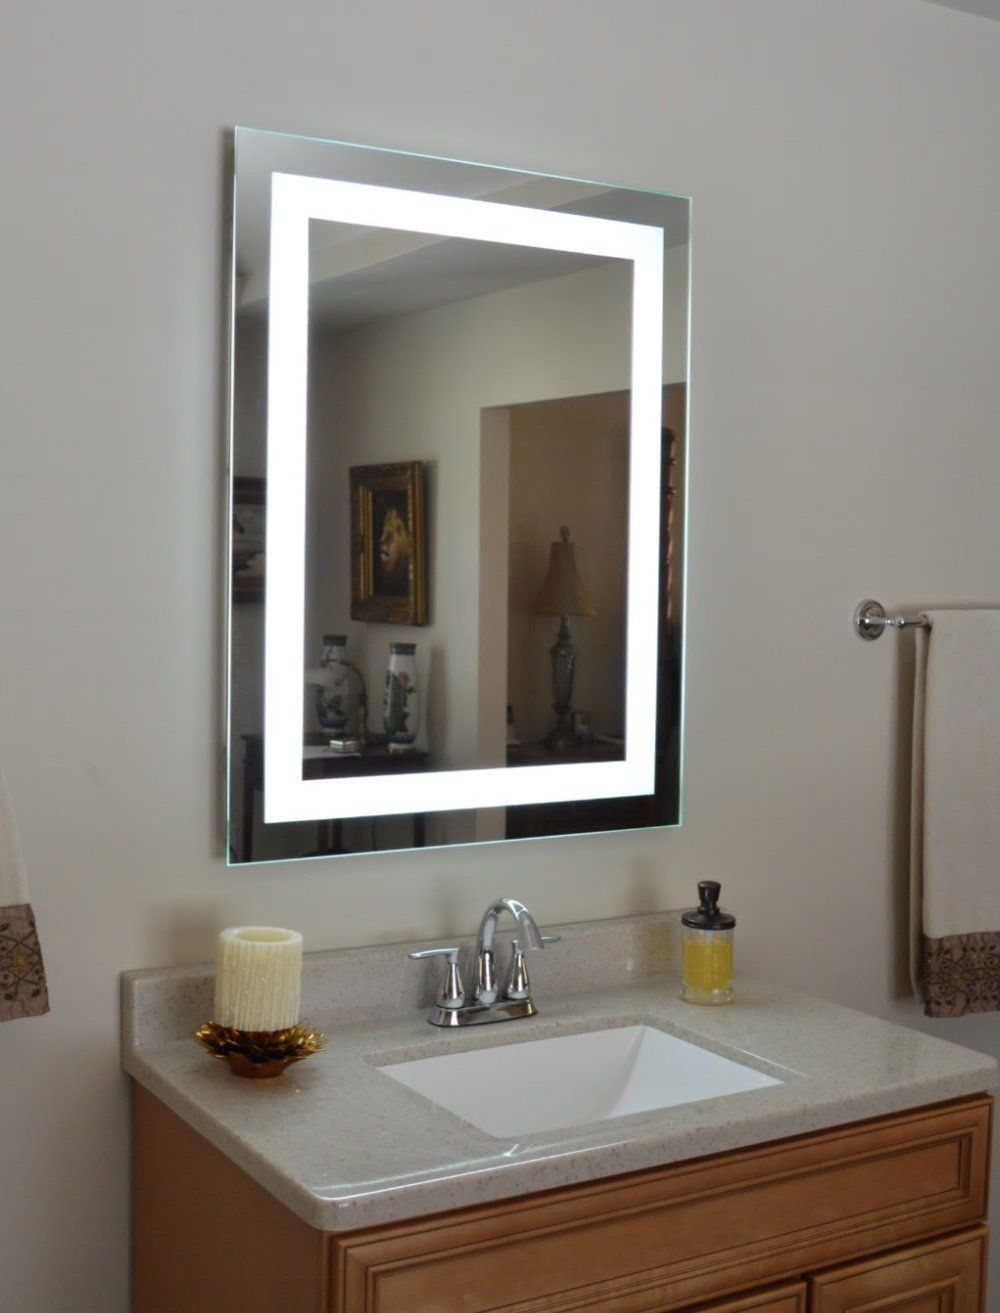 Front Lighted Led Bathroom Vanity Mirror 28 Green Bathroom Modern Master Bathroom Bathroom Vanity Mirror